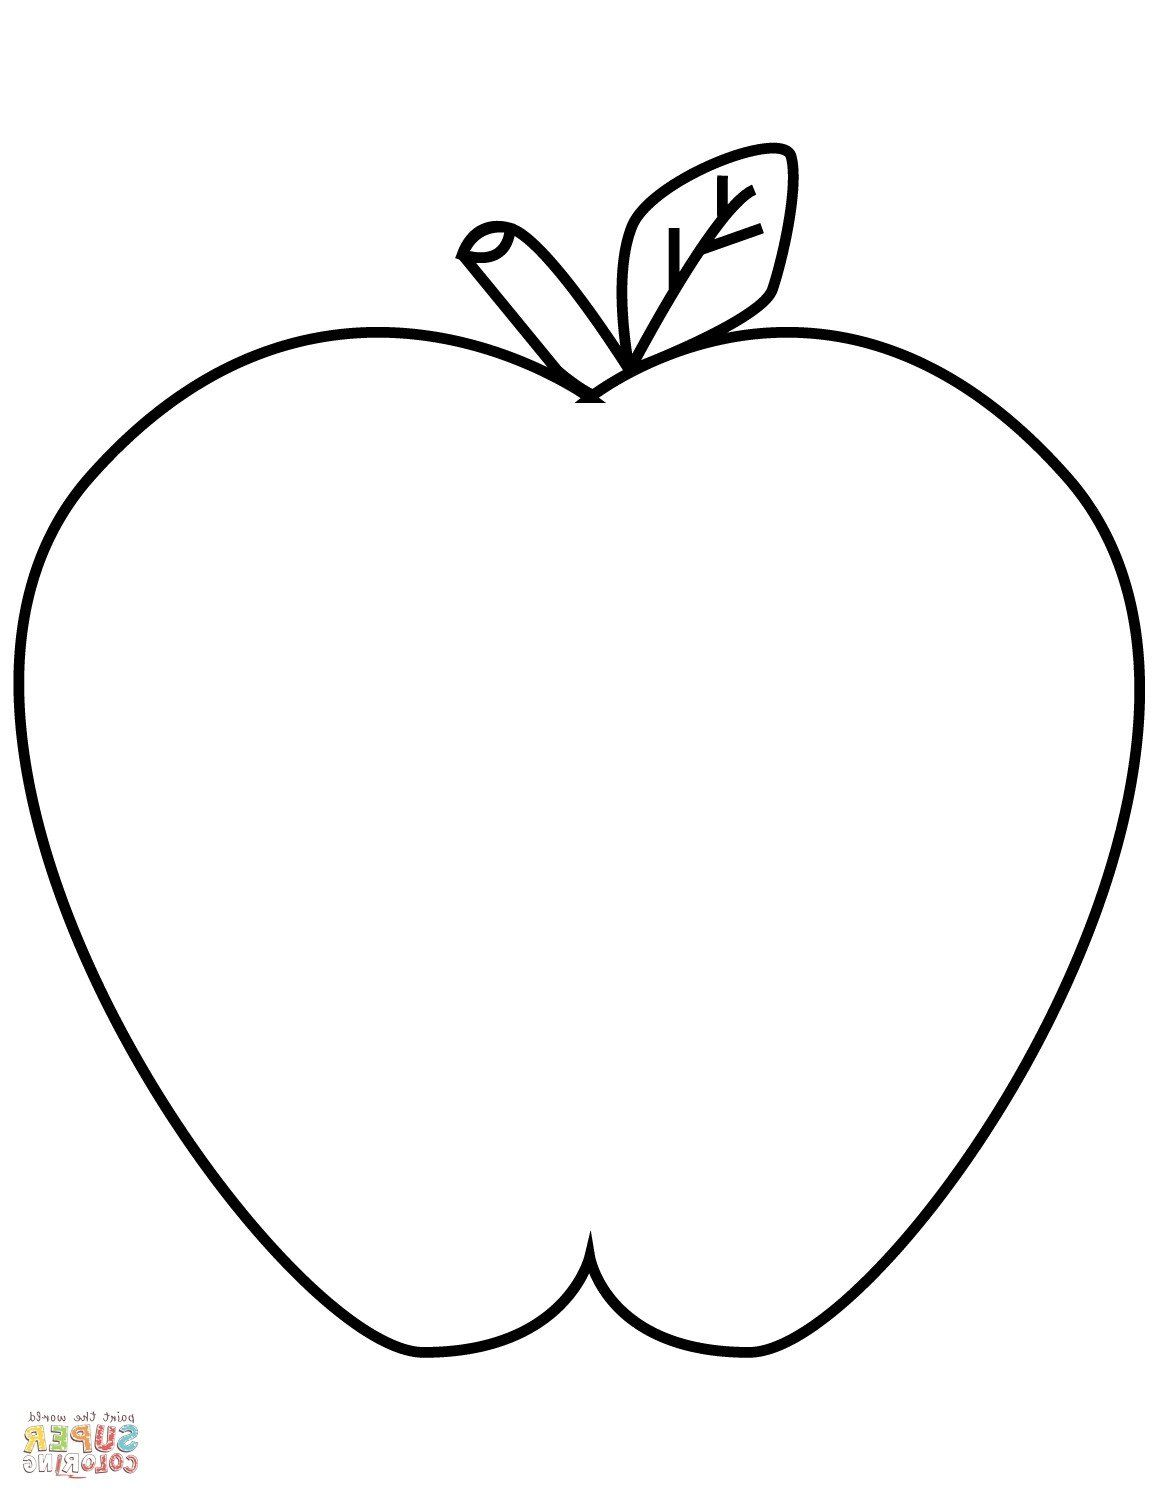 Free Apple Coloring Pages Apple Coloring Sheet Apple Coloring Pages Candy Coloring Pages Apple Coloring